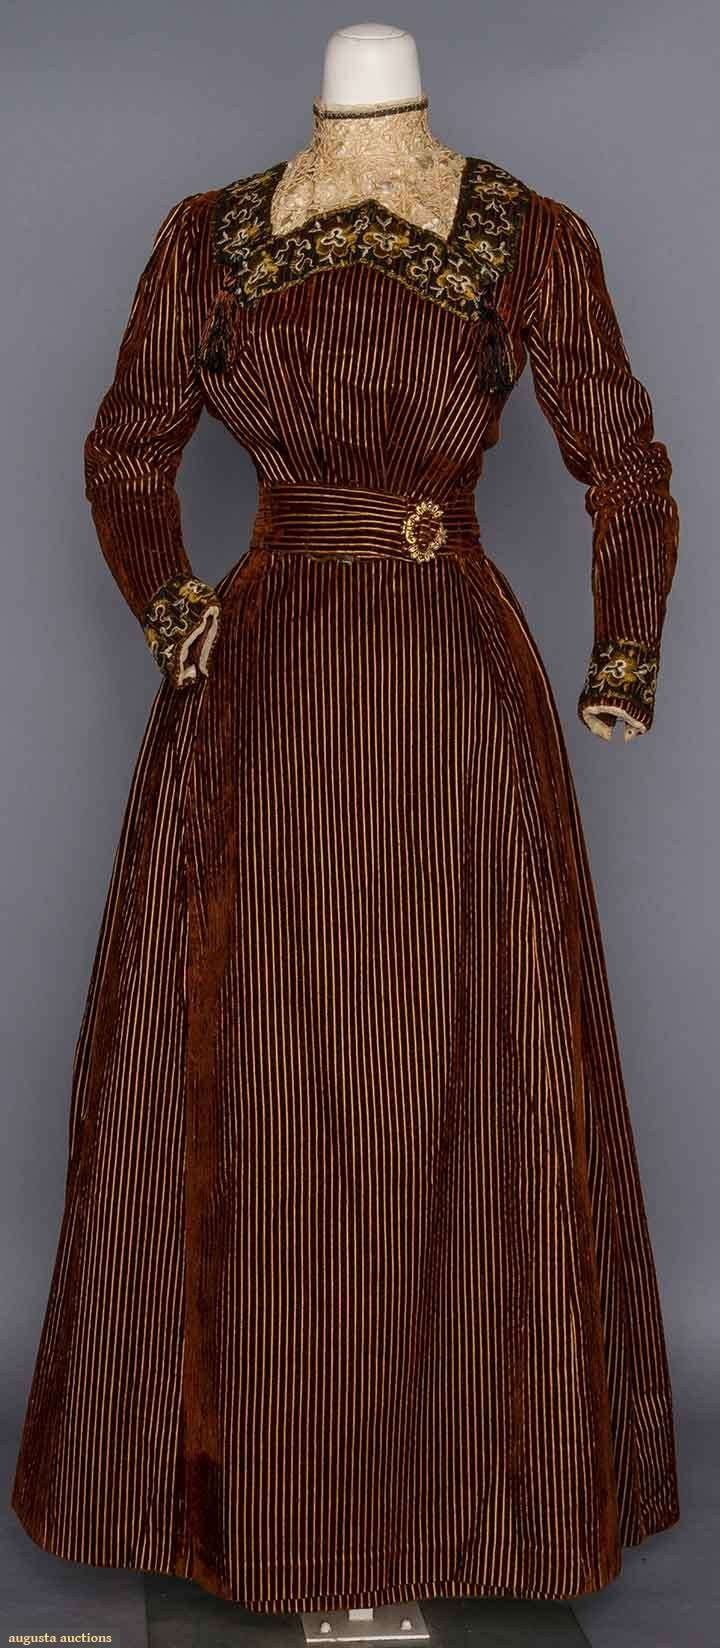 VELVET AFTERNOON DRESS, LATE 1890s | 2-piece, rusty brown velvet corduroy w/ yellow stripes, black net trim w/ cream & gold embroidery, high inset lace dicky, cut steel on gold metal buckle at the waist